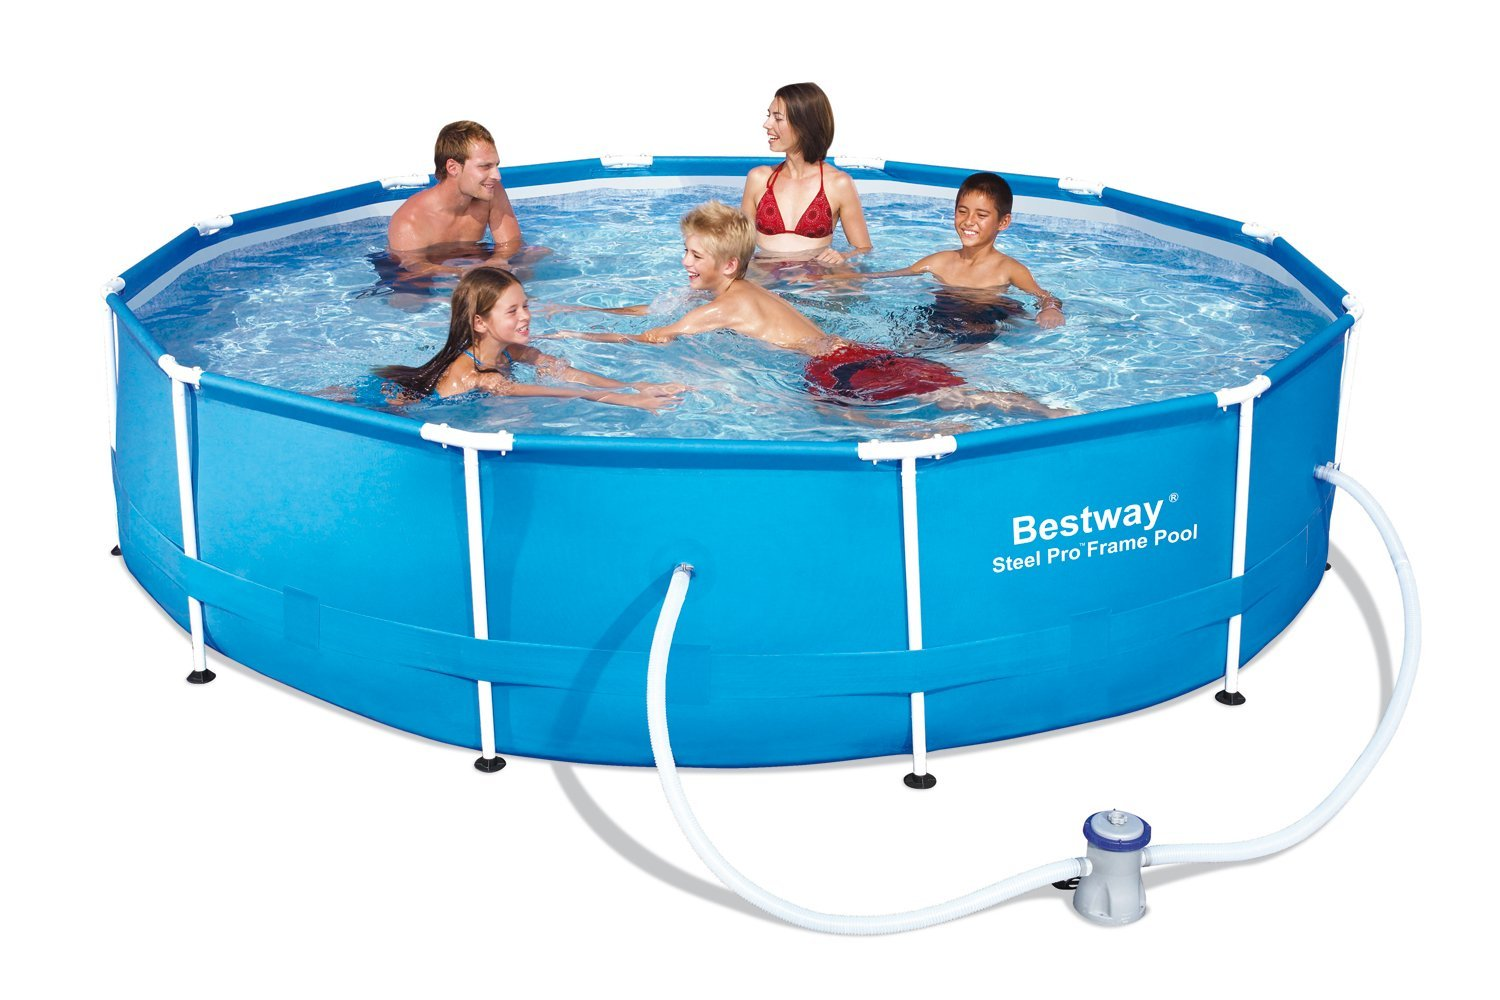 Bestway piscine ronde steel frame le test de la r daction for Cheb hichem 2015 la piscine